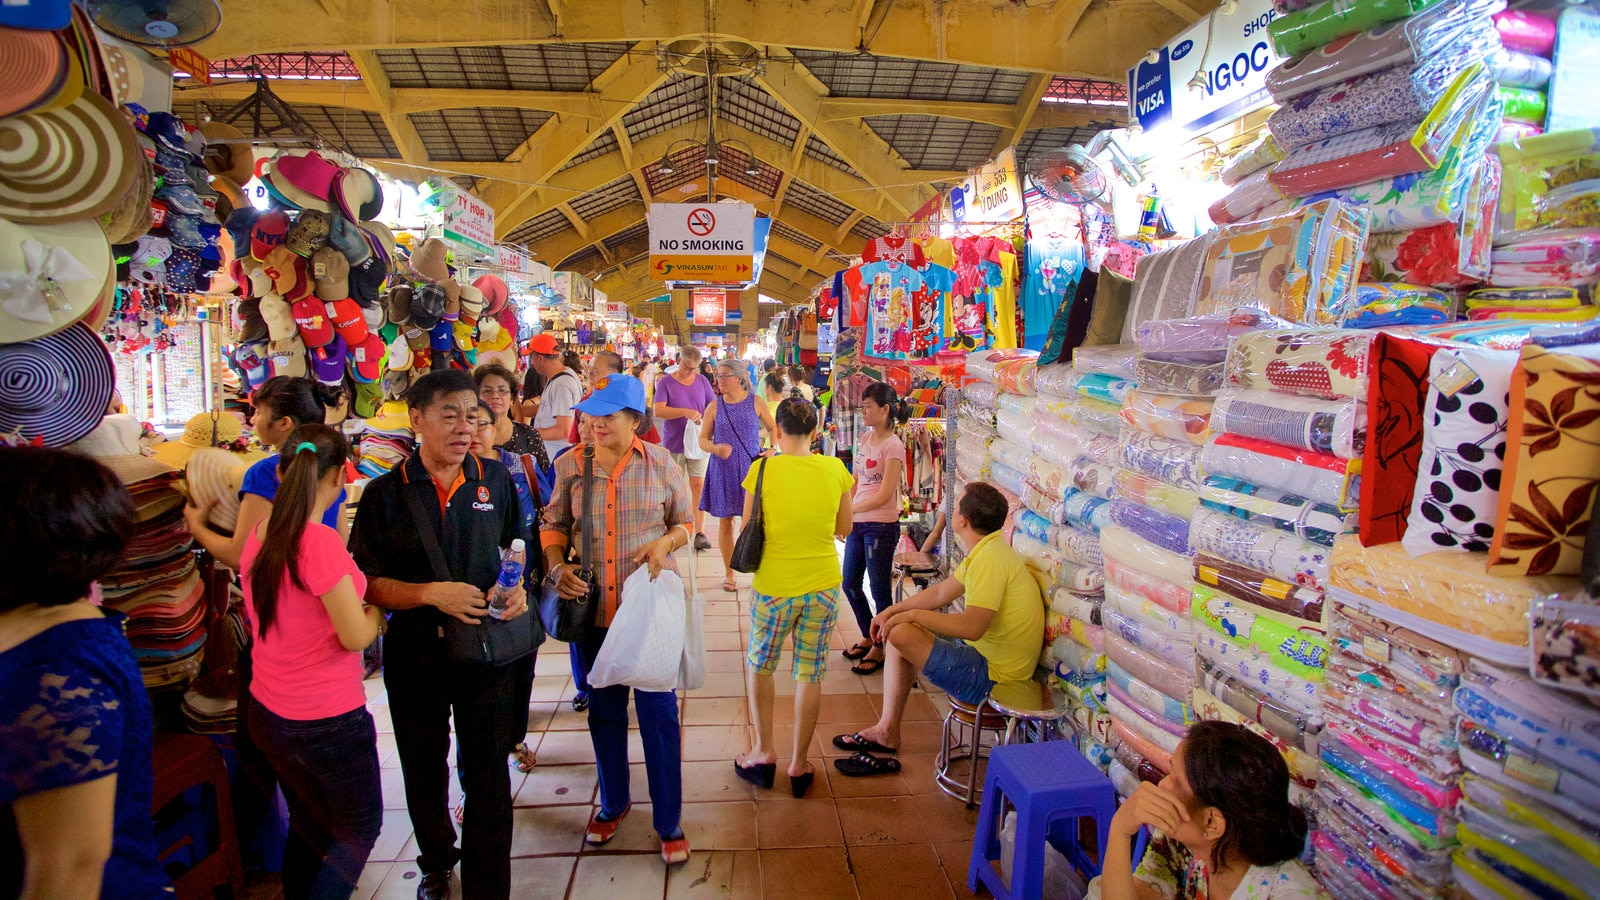 Ben Thanh Market which includes interior views, shopping and markets